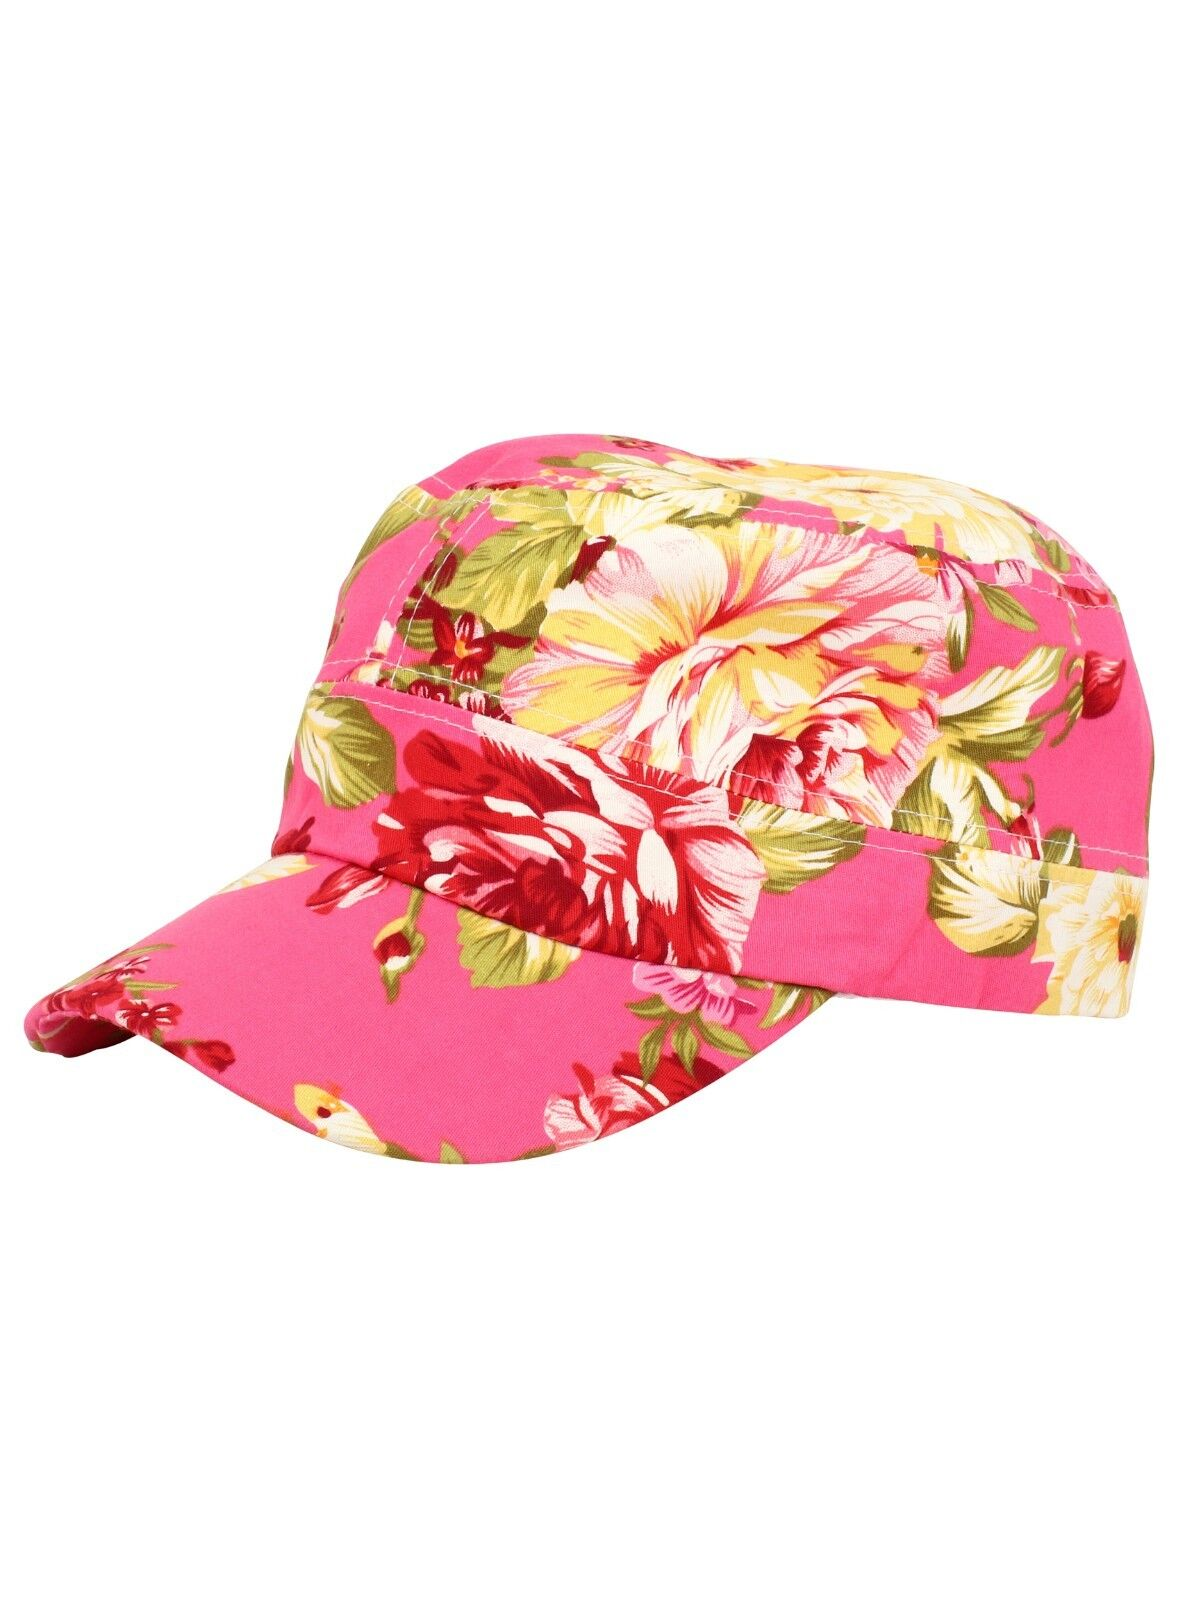 9f551e17a62d3 Ladies Baseball Cap Floral New Hat Festival Cotton Summer Womens ...